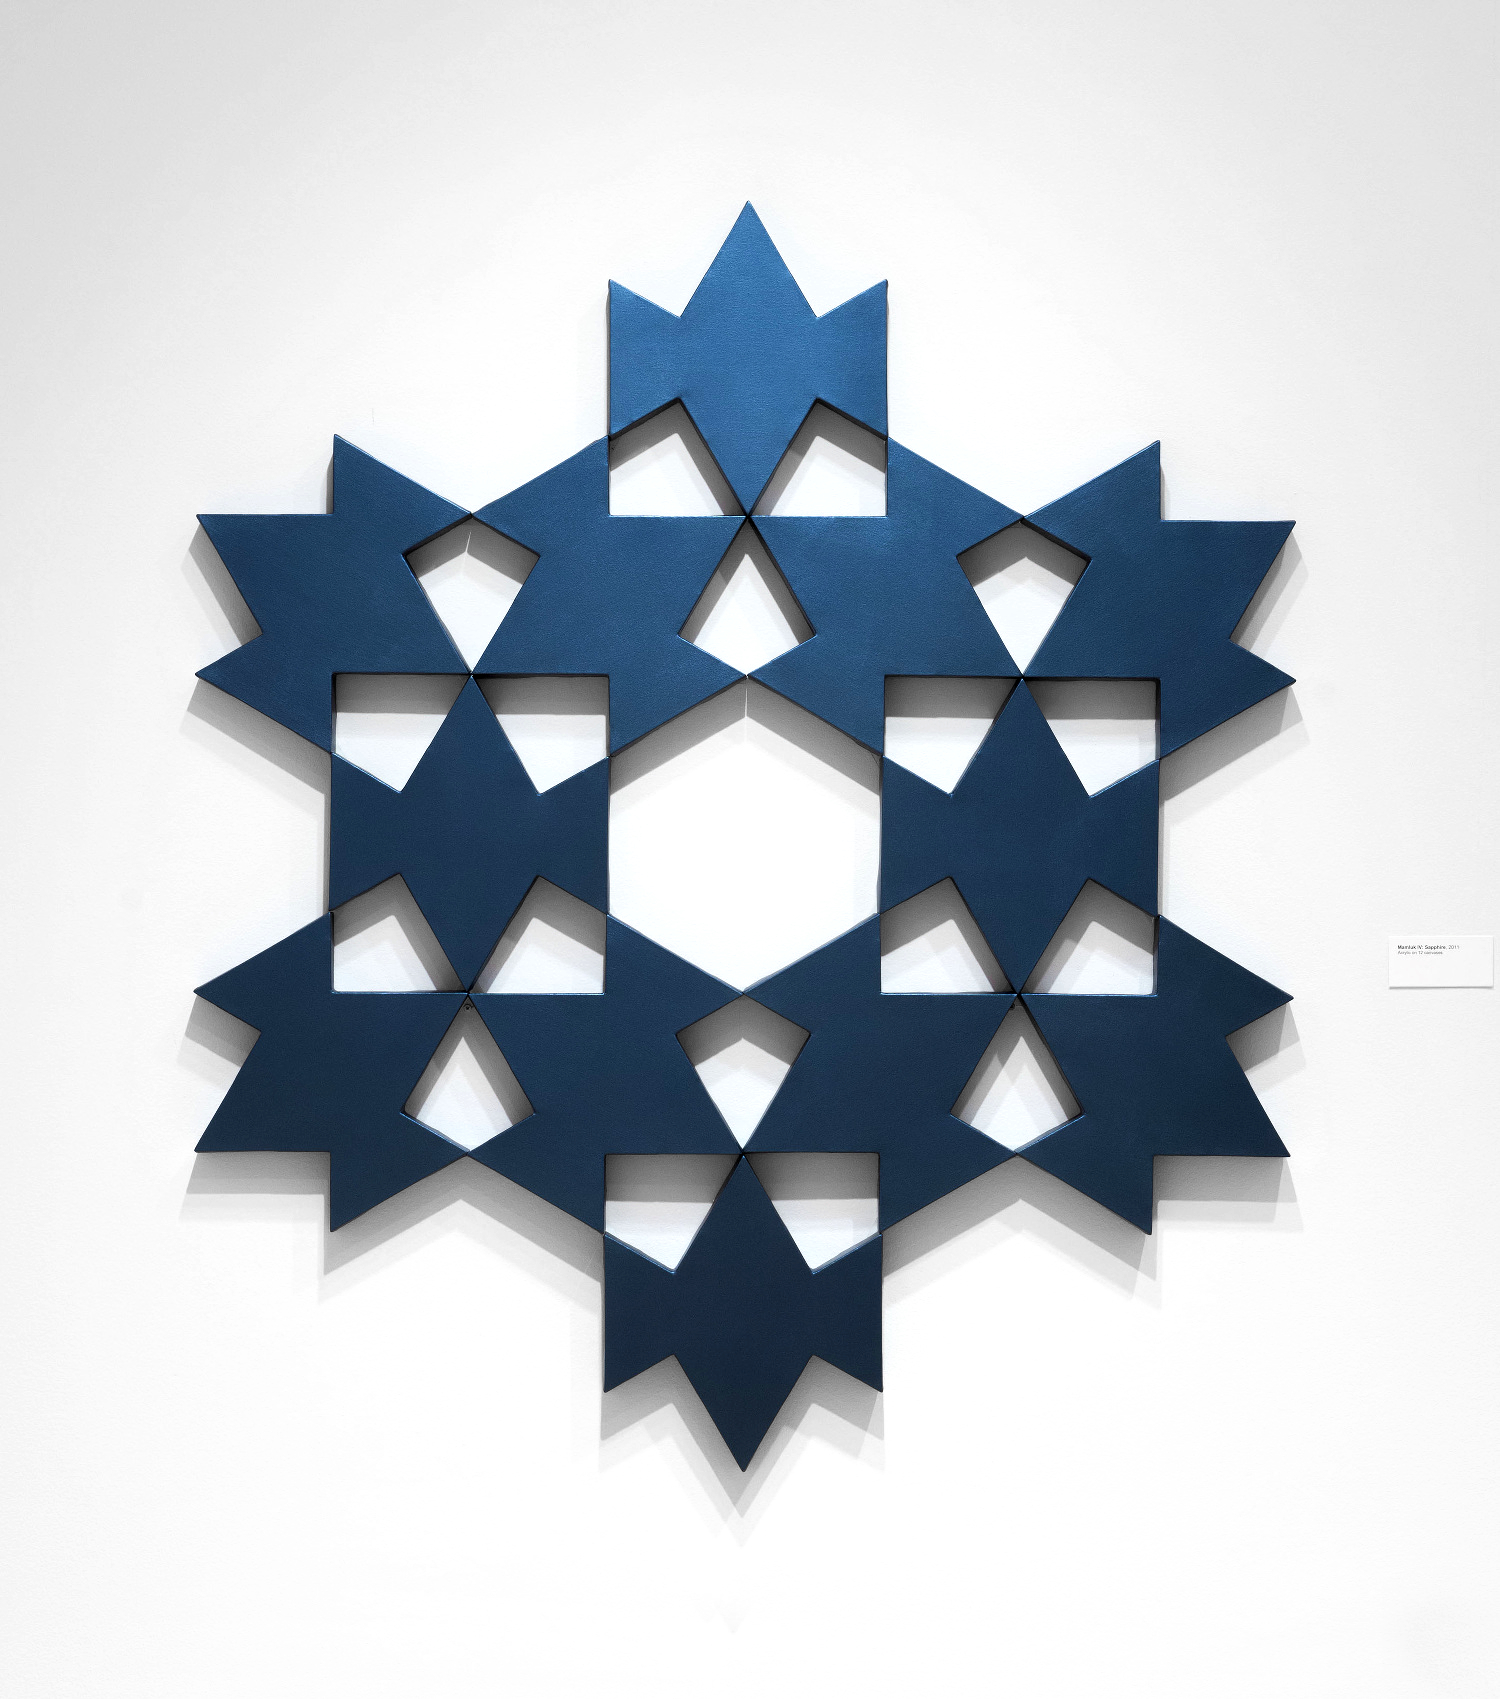 Mamluk IV: Sapphire   2011. Acrylic on 12 canvases. 62 x 72 in., 157.5 x 182.9 cm.